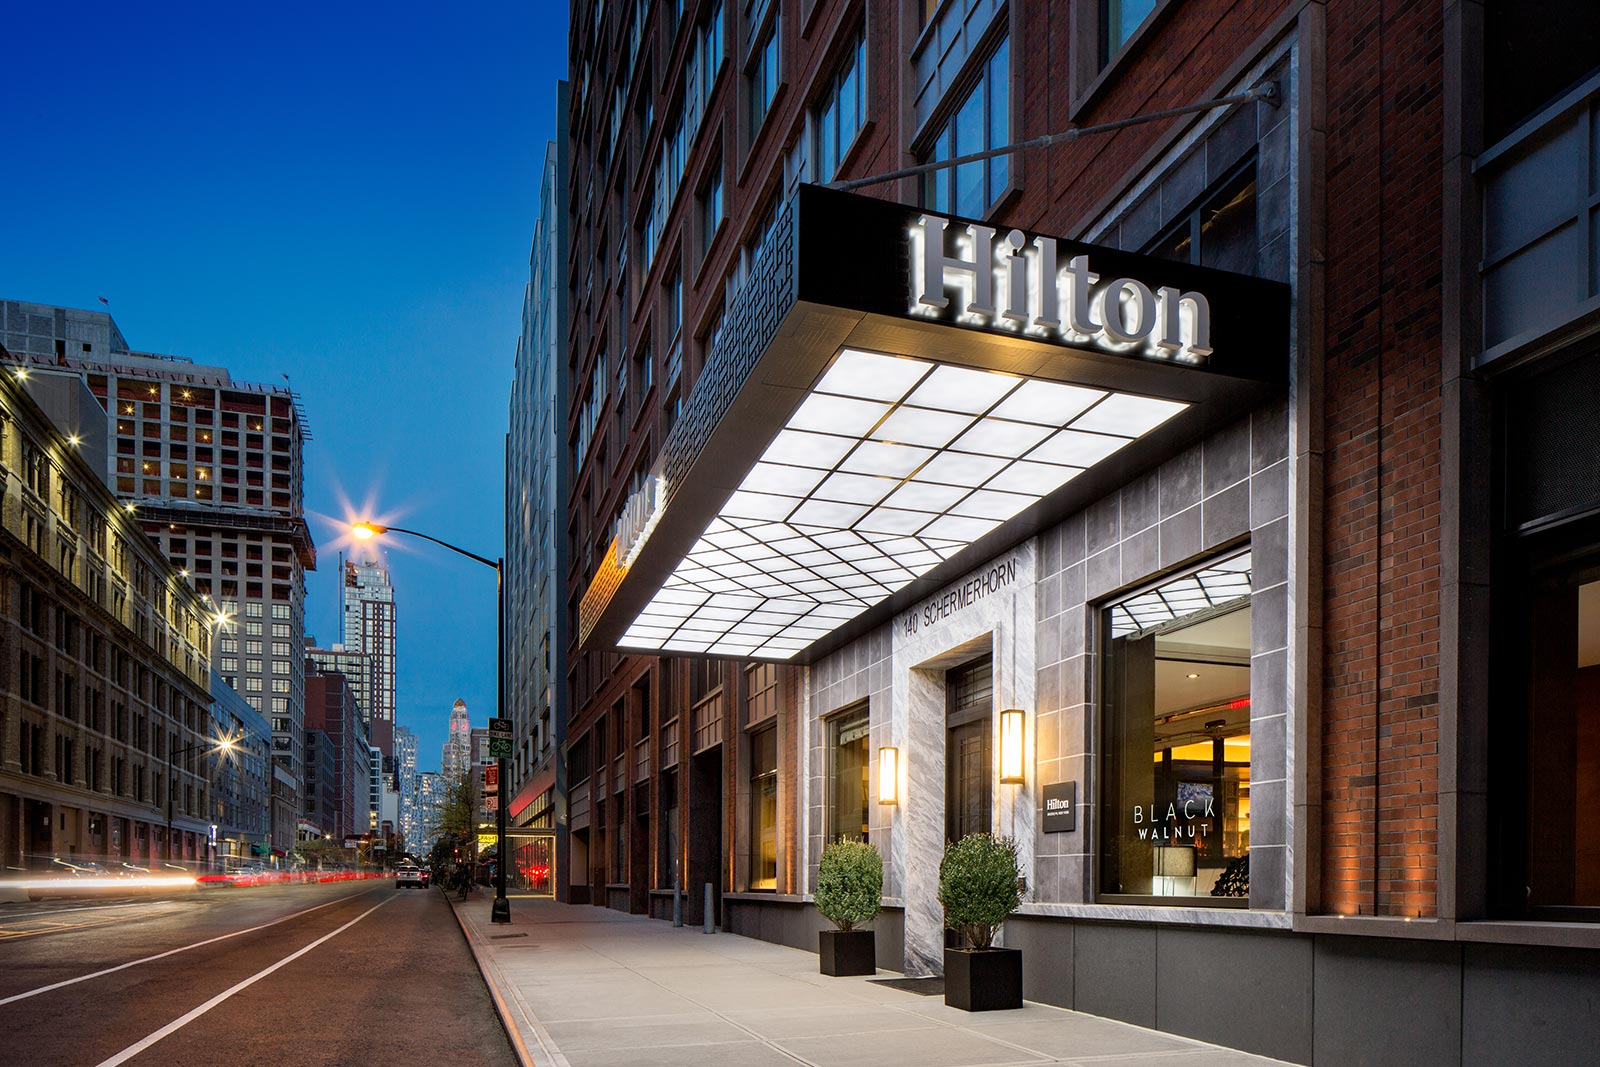 Hotel-photography-by-Greg-Ceo-studio-for-Hilton-Brooklyn-exterior.jpg